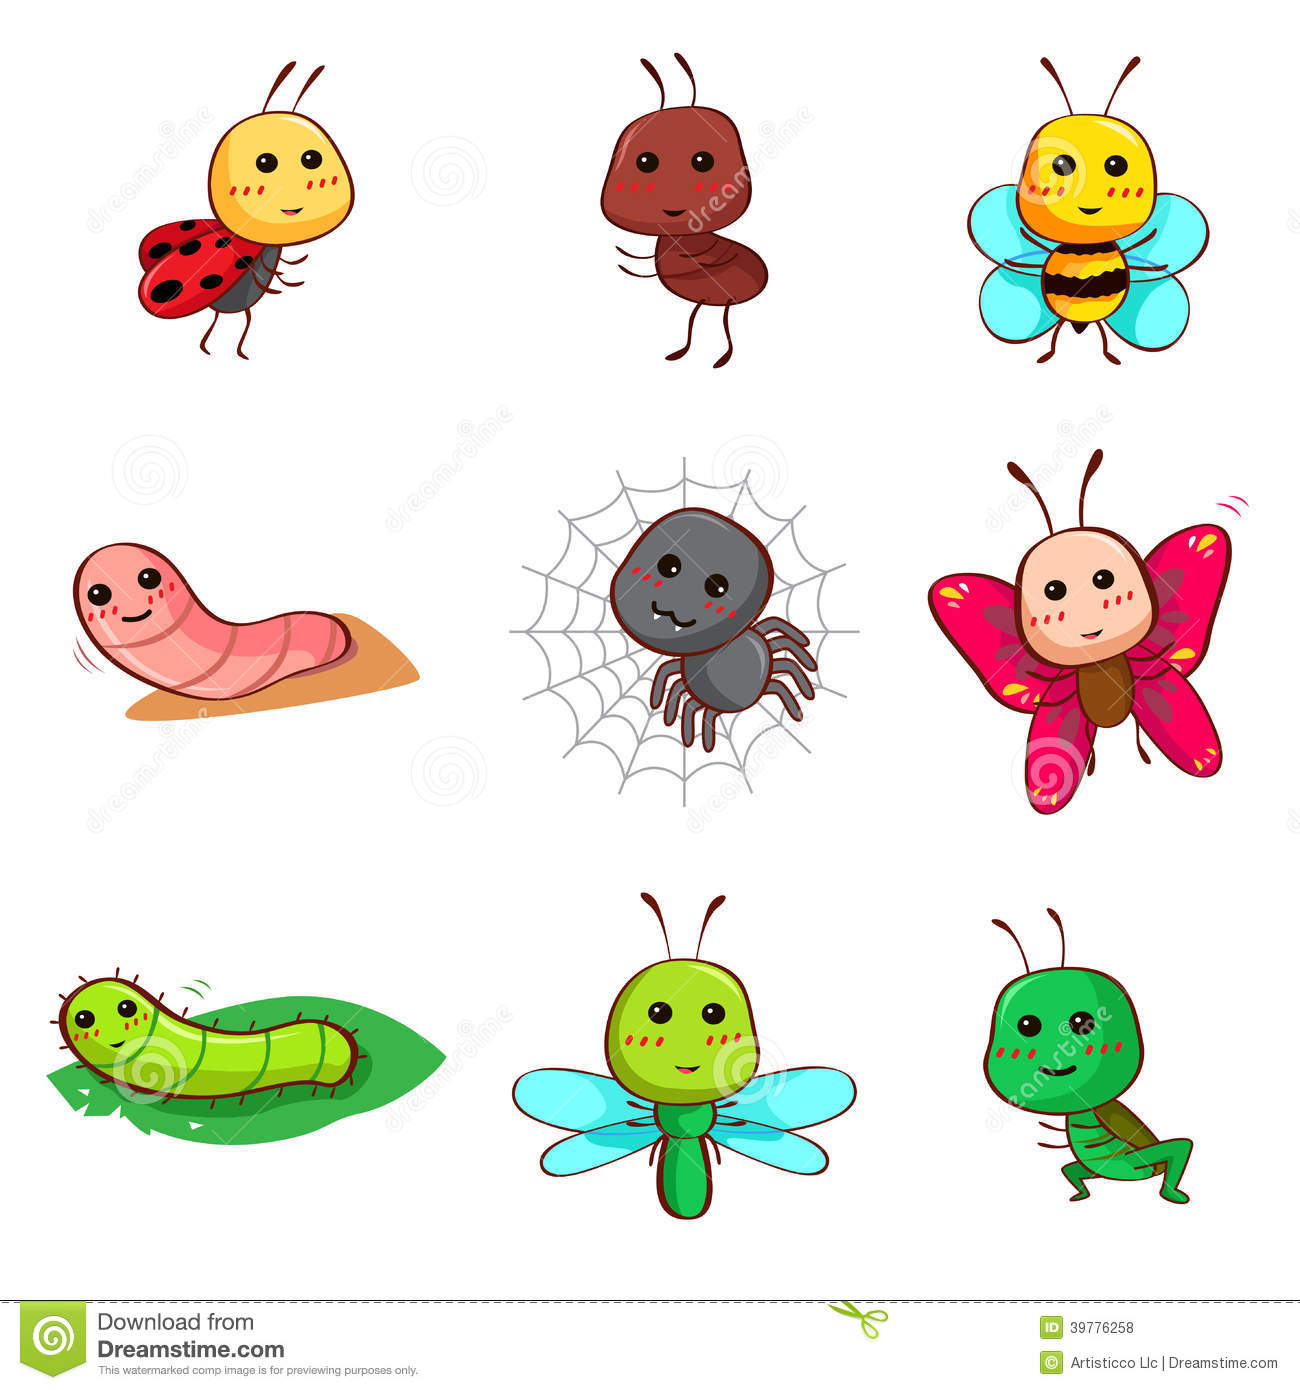 Cute Cartoon Bugs Group with 52+ items.